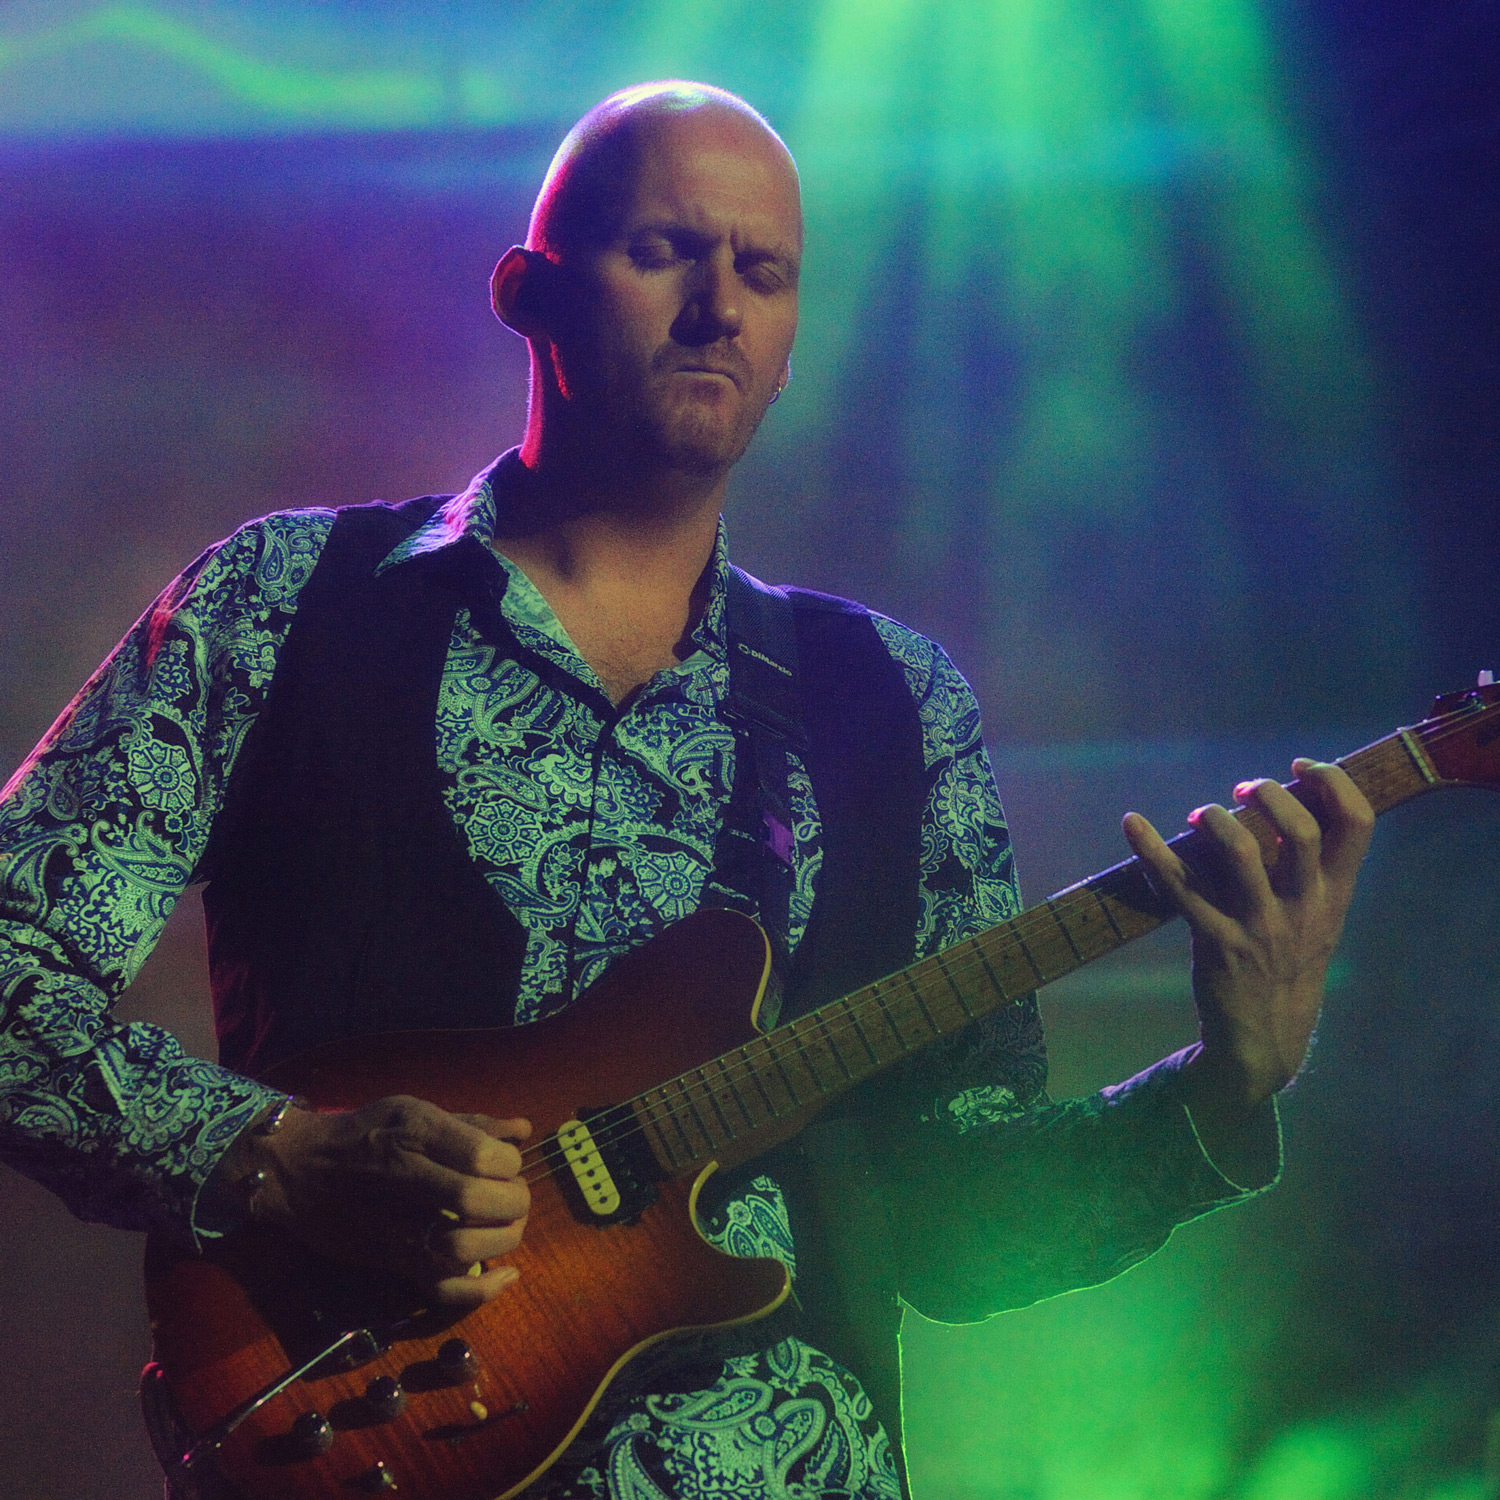 Jamie Humphries plays DiMarzio